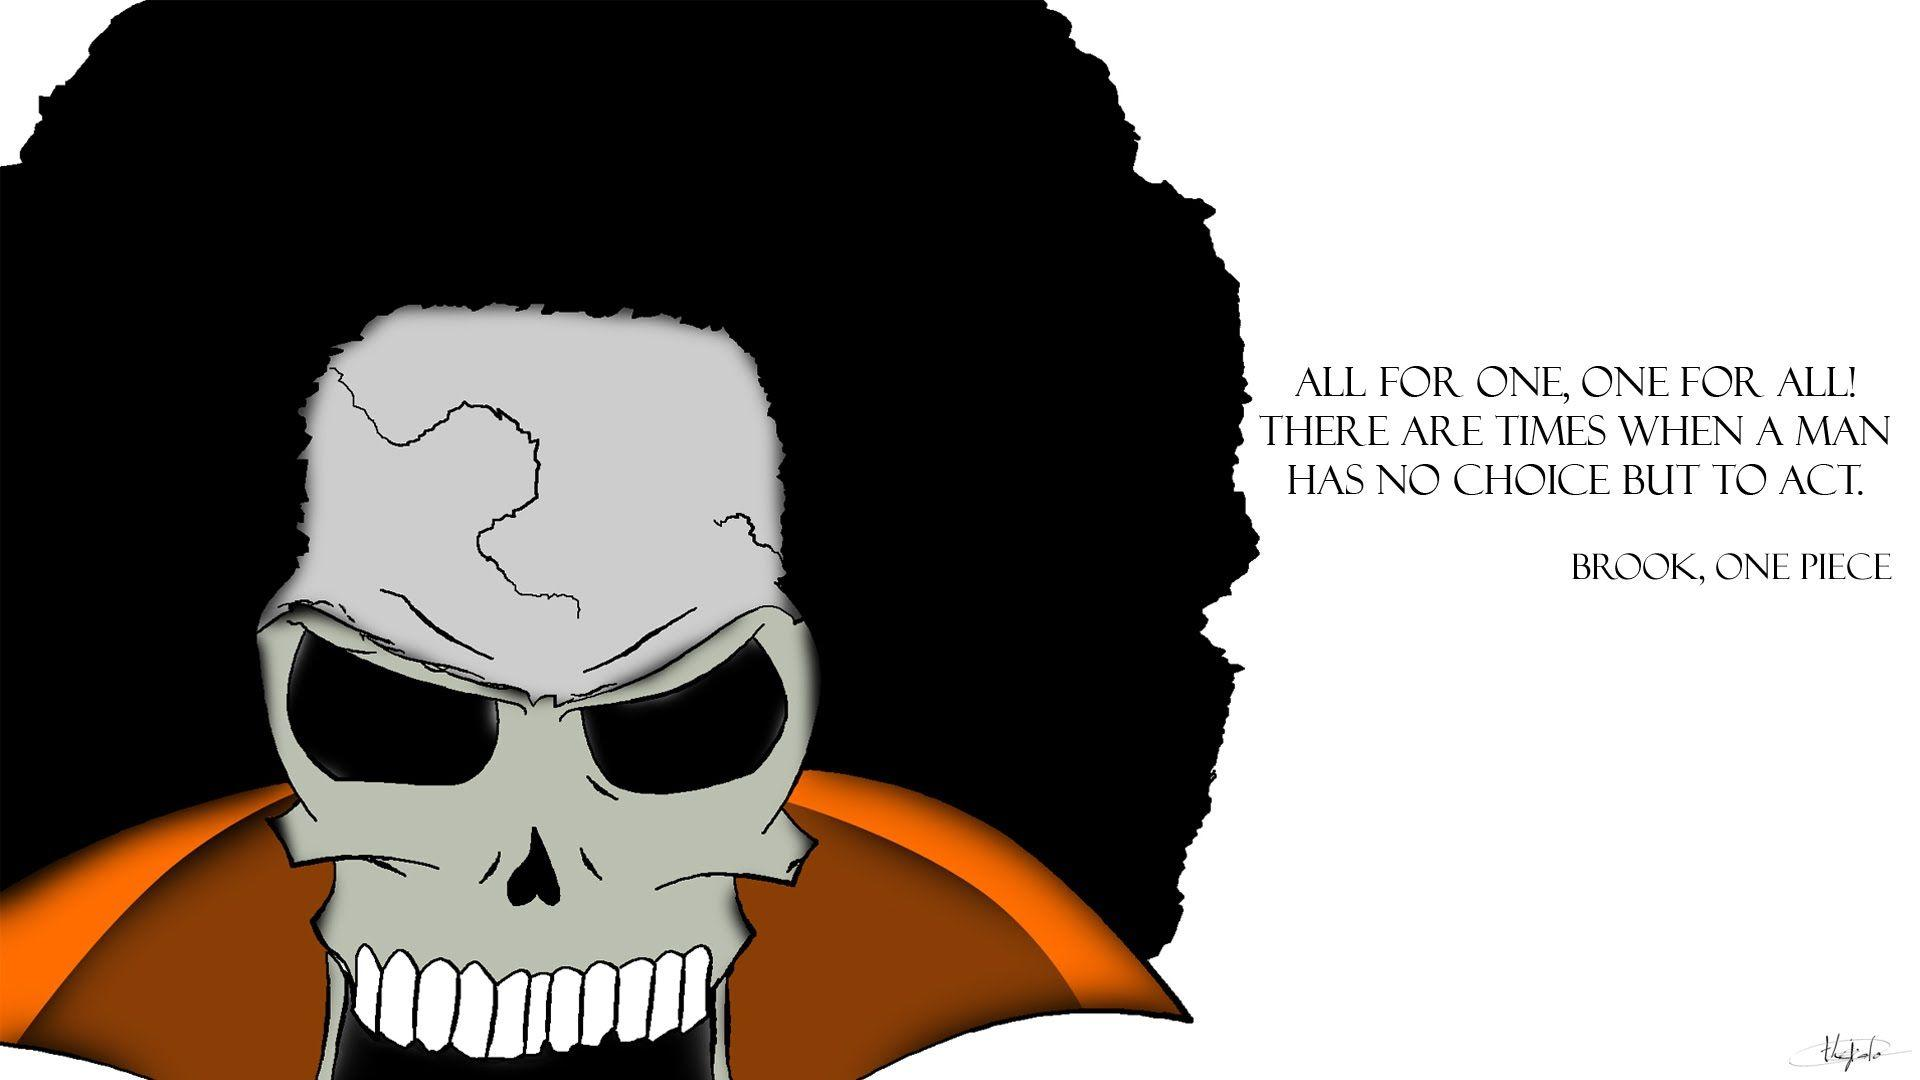 Wallpapers Brook, One Piece [Photoshop Cs5]